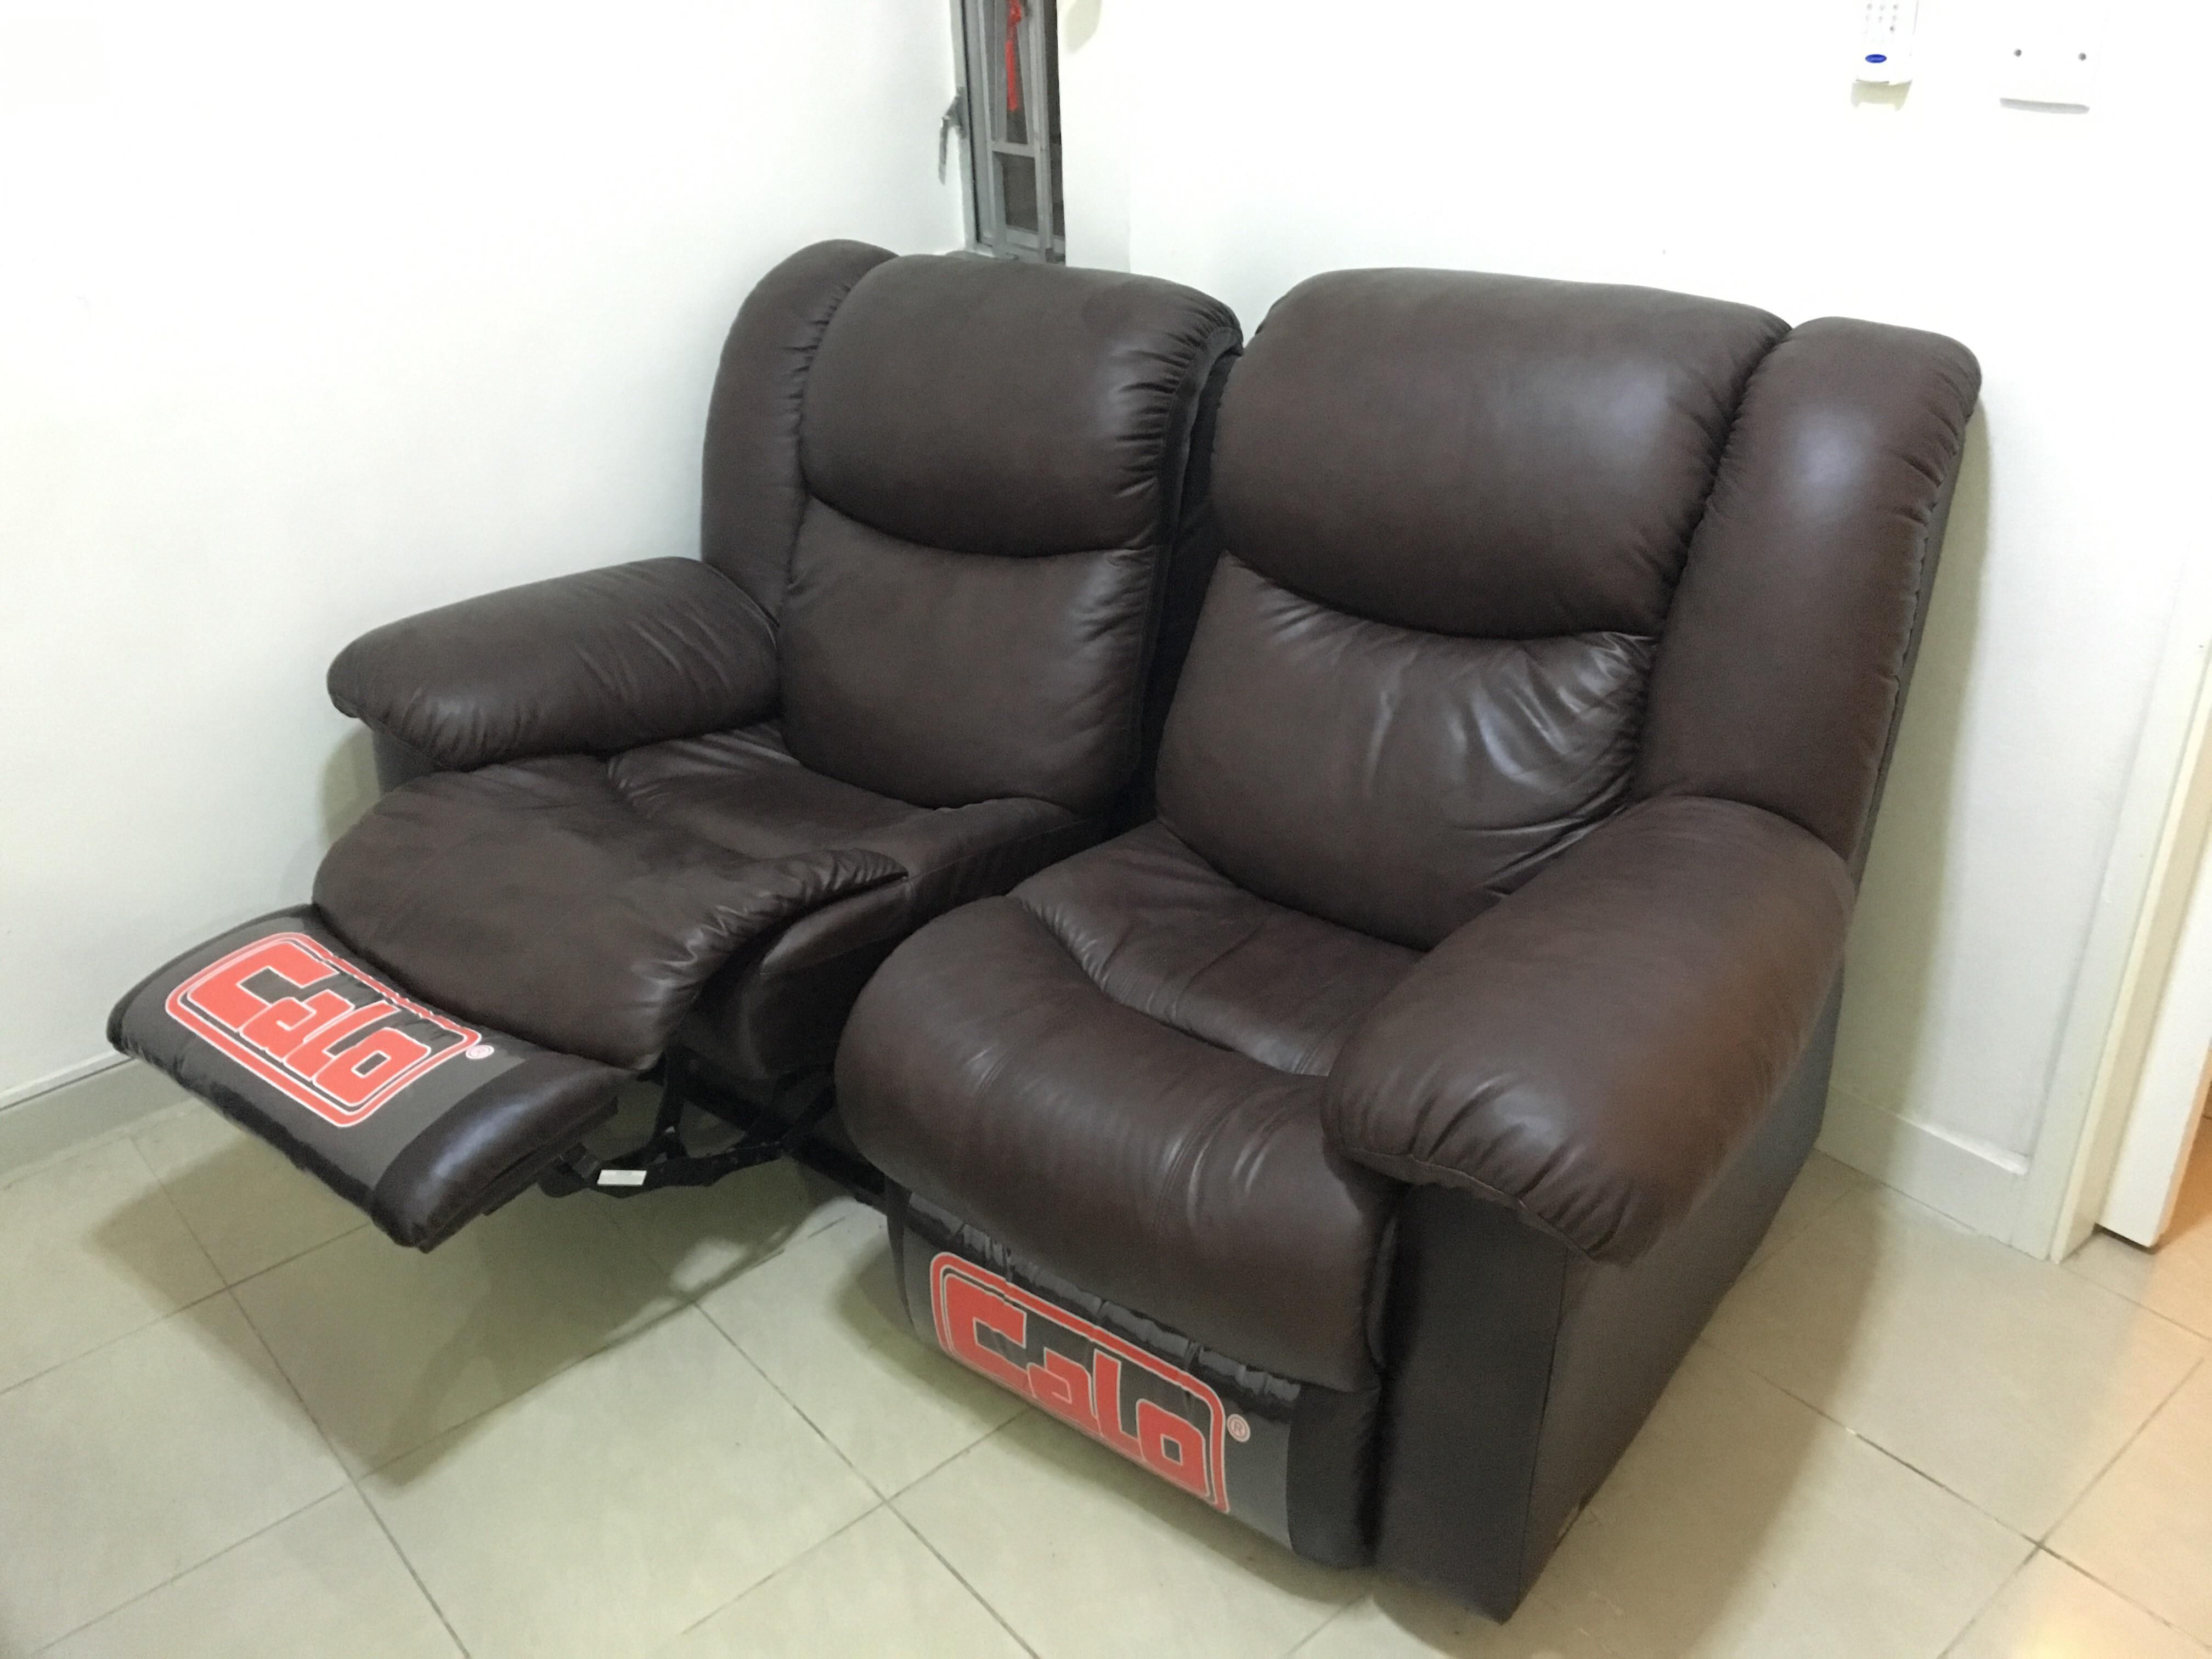 Recliner Chairs (Lazy Boy)  sc 1 st  Secondhand.hk & Recliner Chairs (Lazy Boy) | Secondhand.hk islam-shia.org